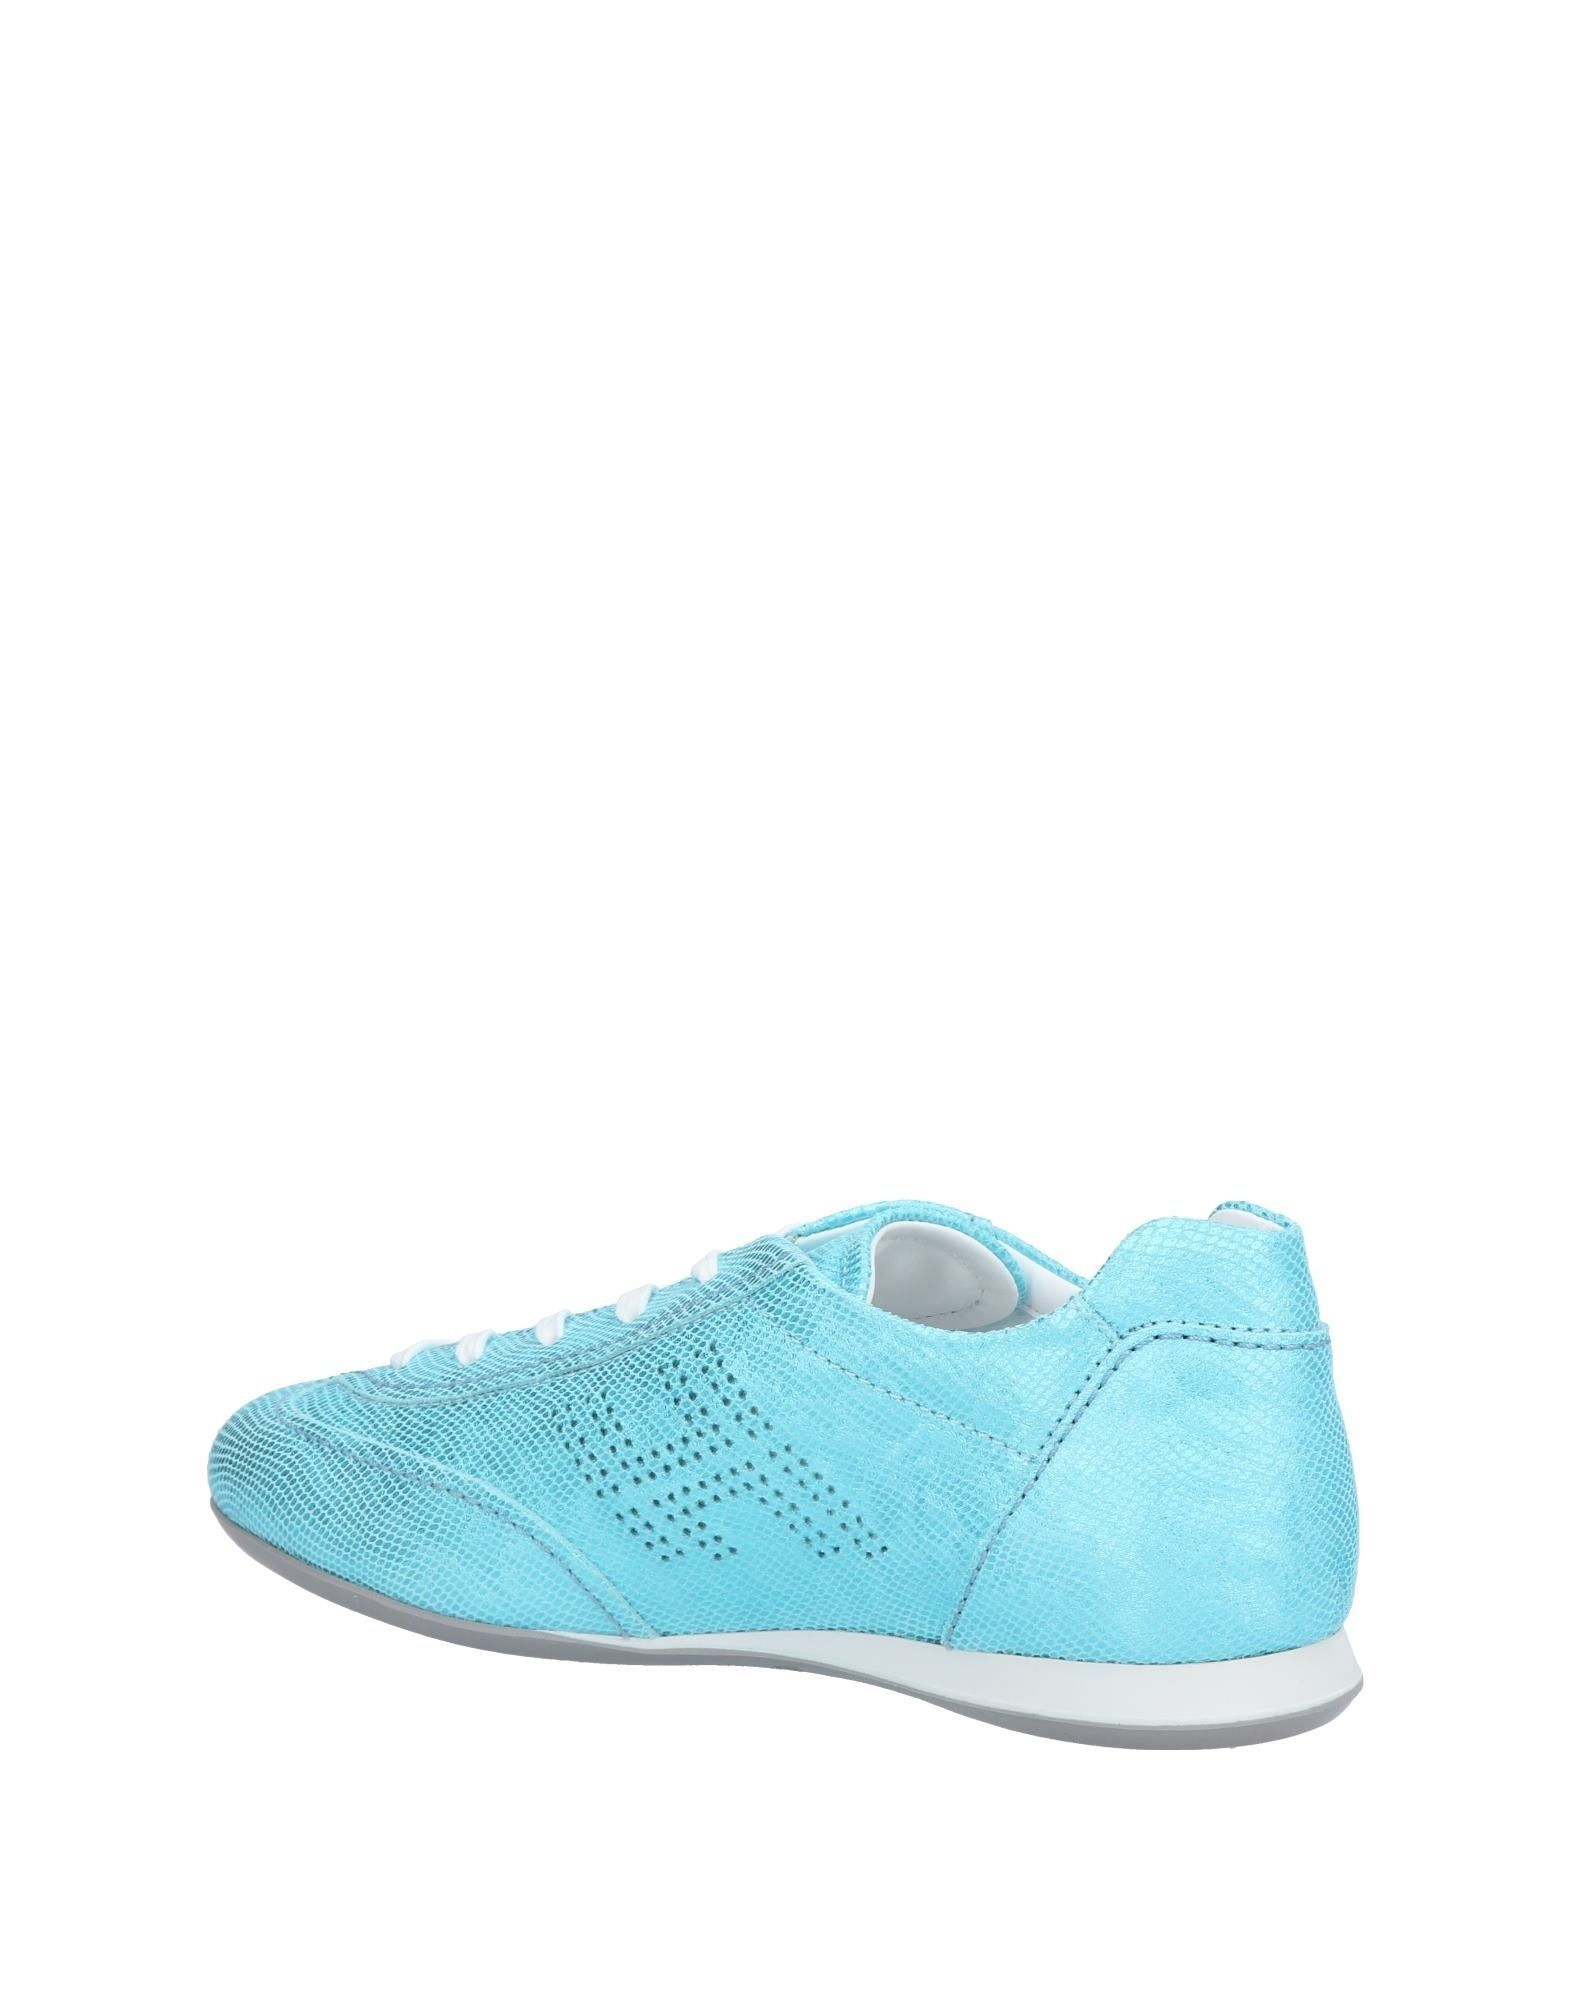 FOOTWEAR Hogan Turquoise Woman Leather